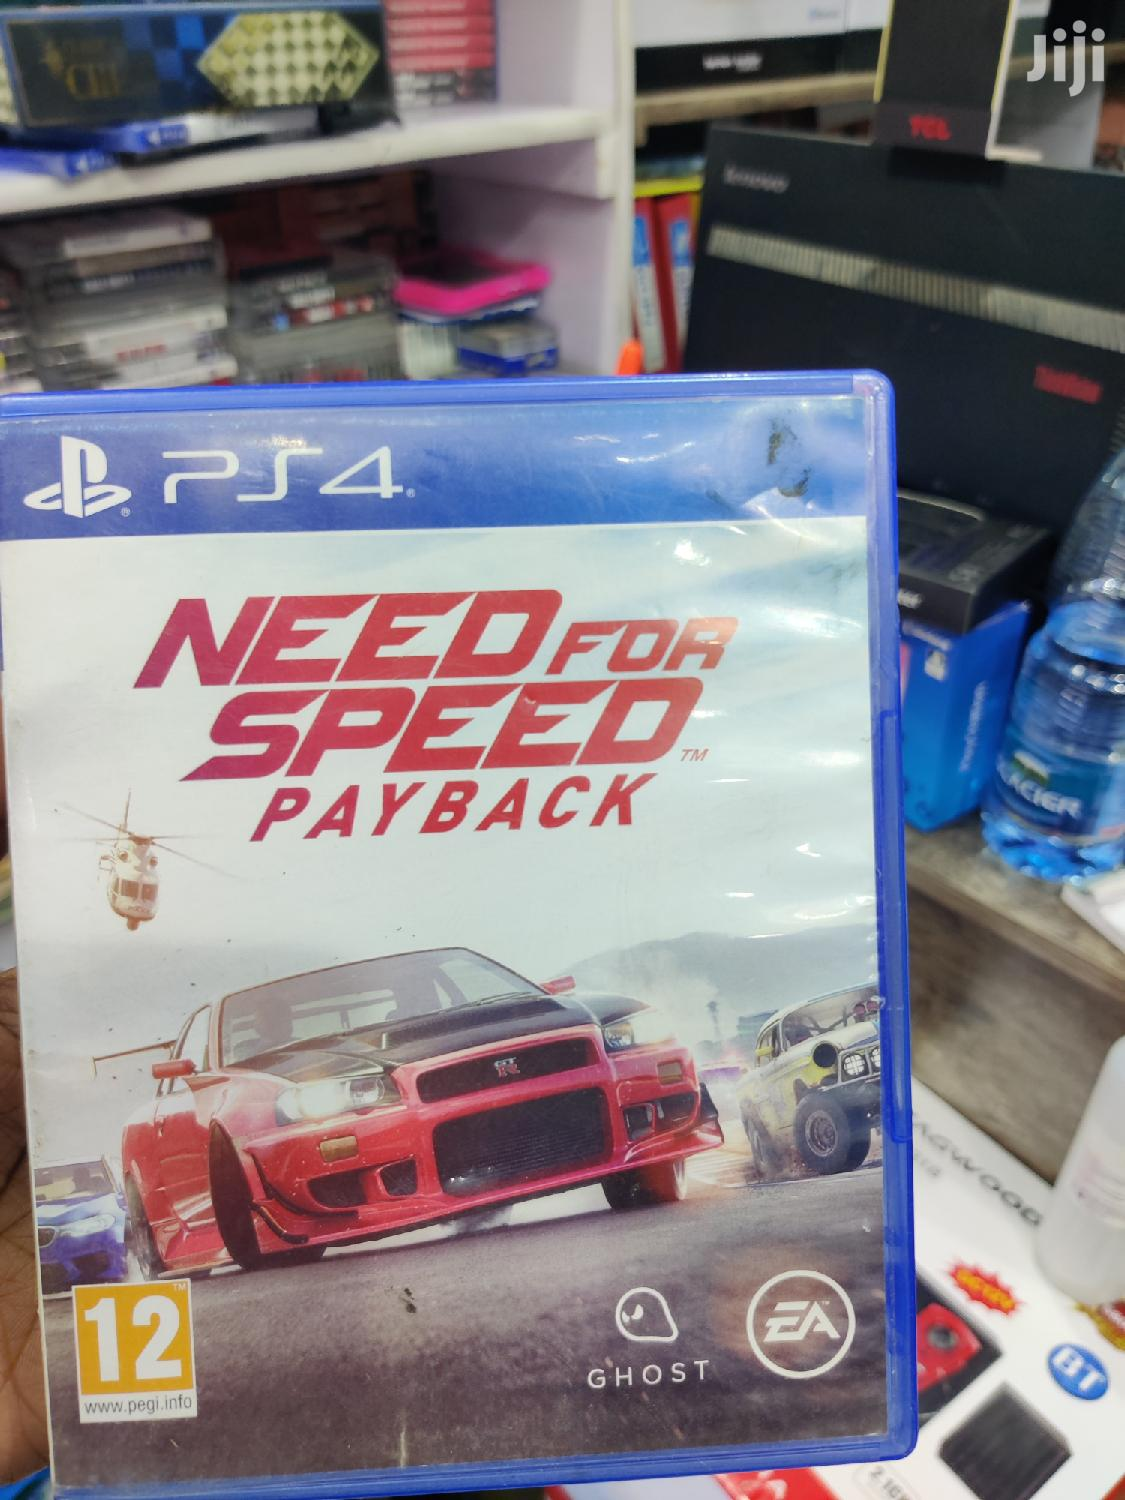 Archive: Nfs Need For Speed Payback